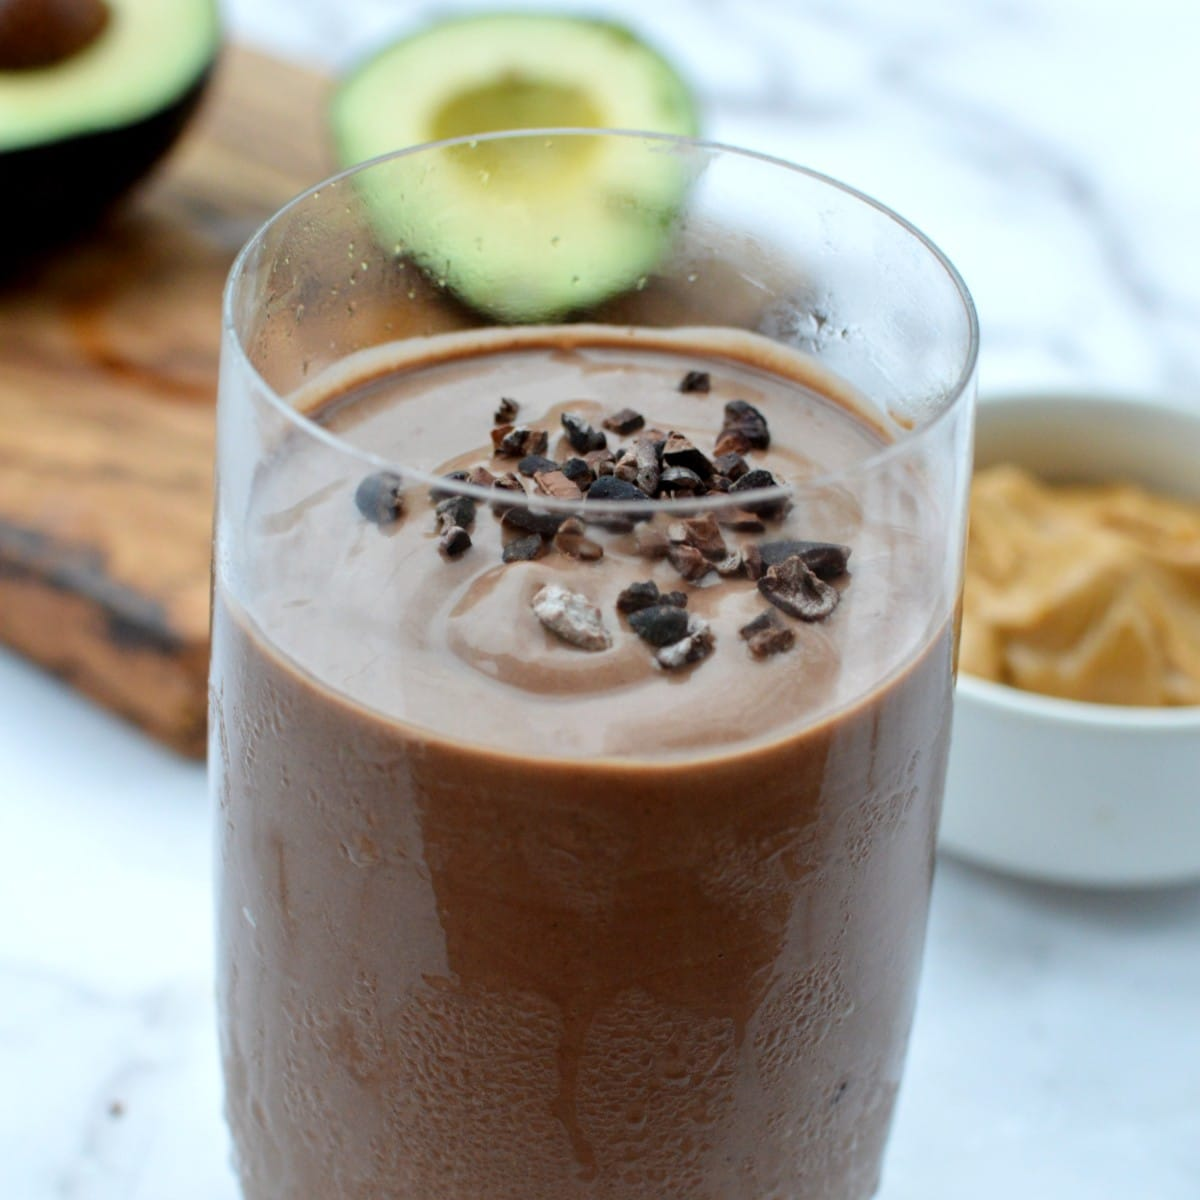 peanut butter avocado smoothie with chocolate